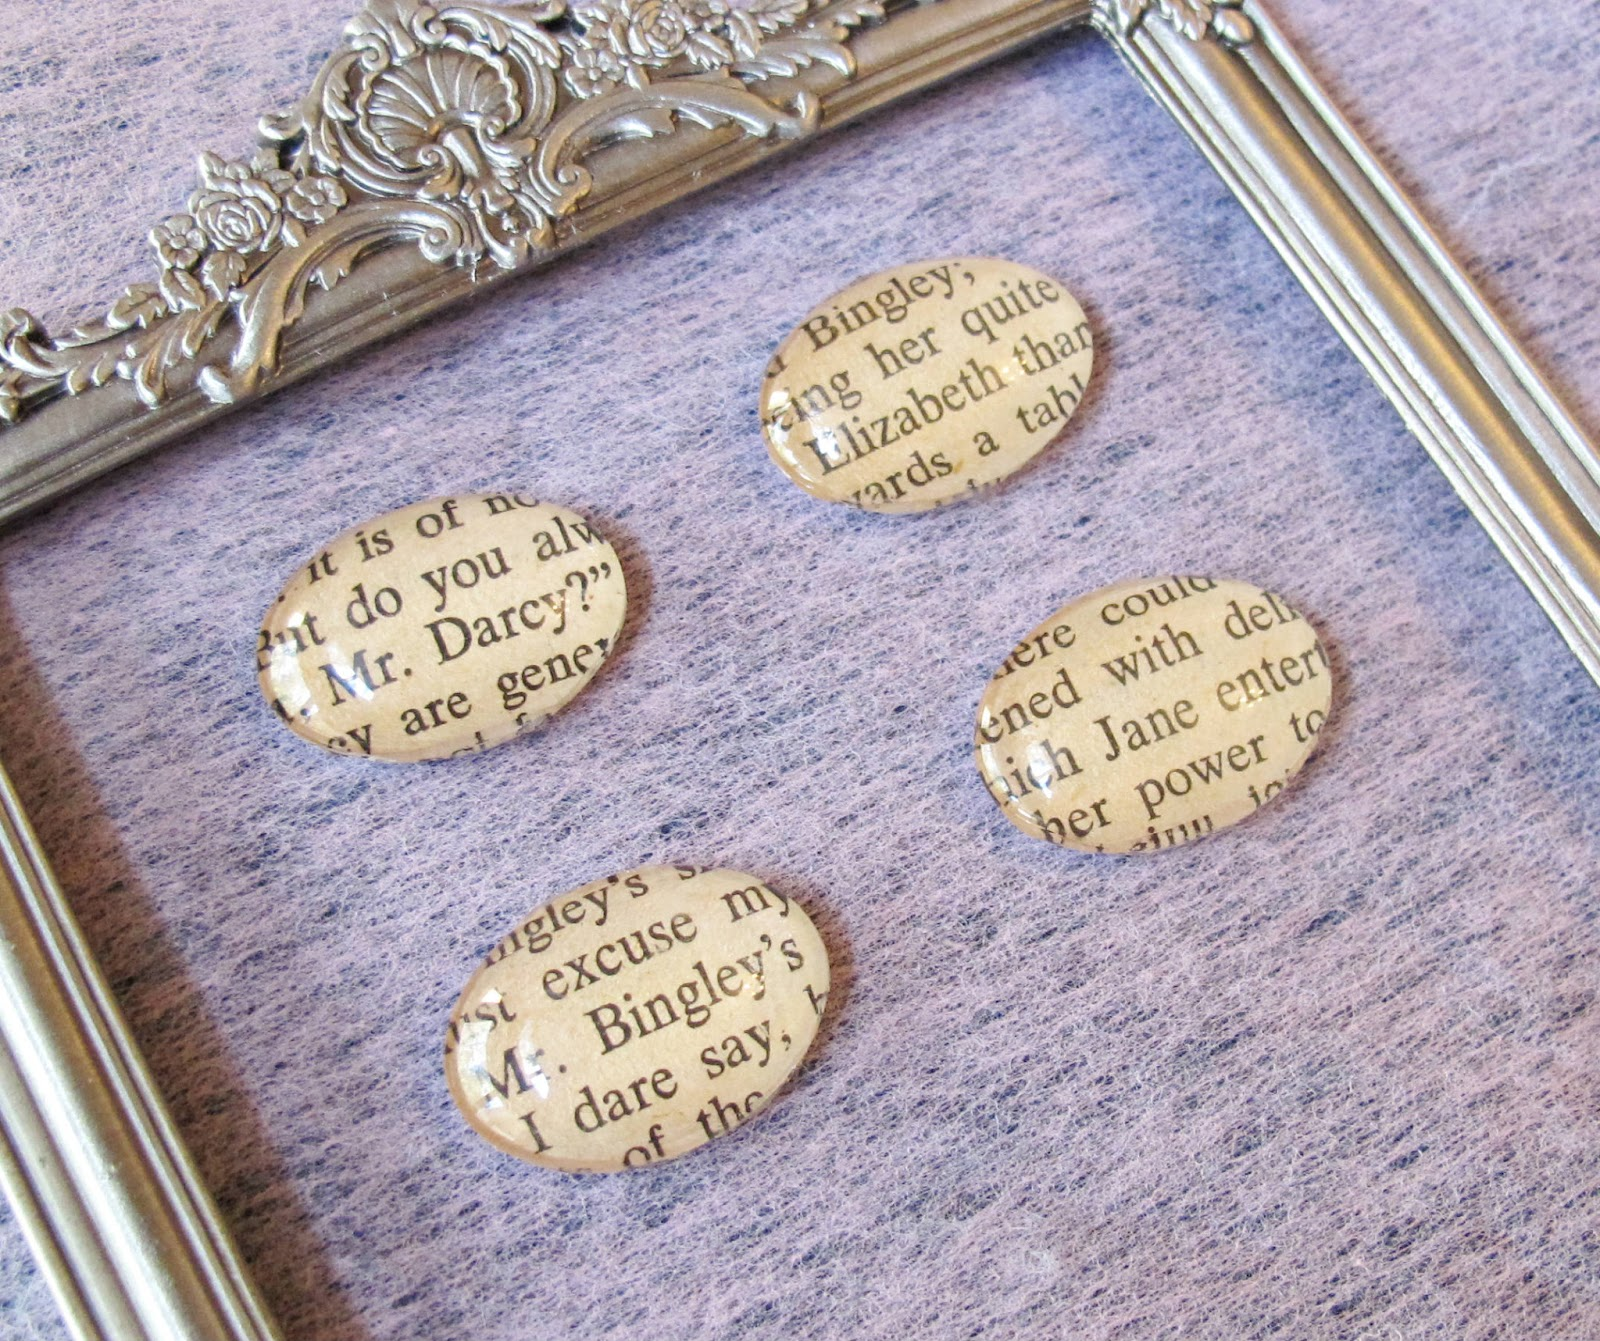 image glass magnets mr darcy elizabeth bennet jane austen pride and prejudice mr bingley jane bennetdomum vindemia upcycled